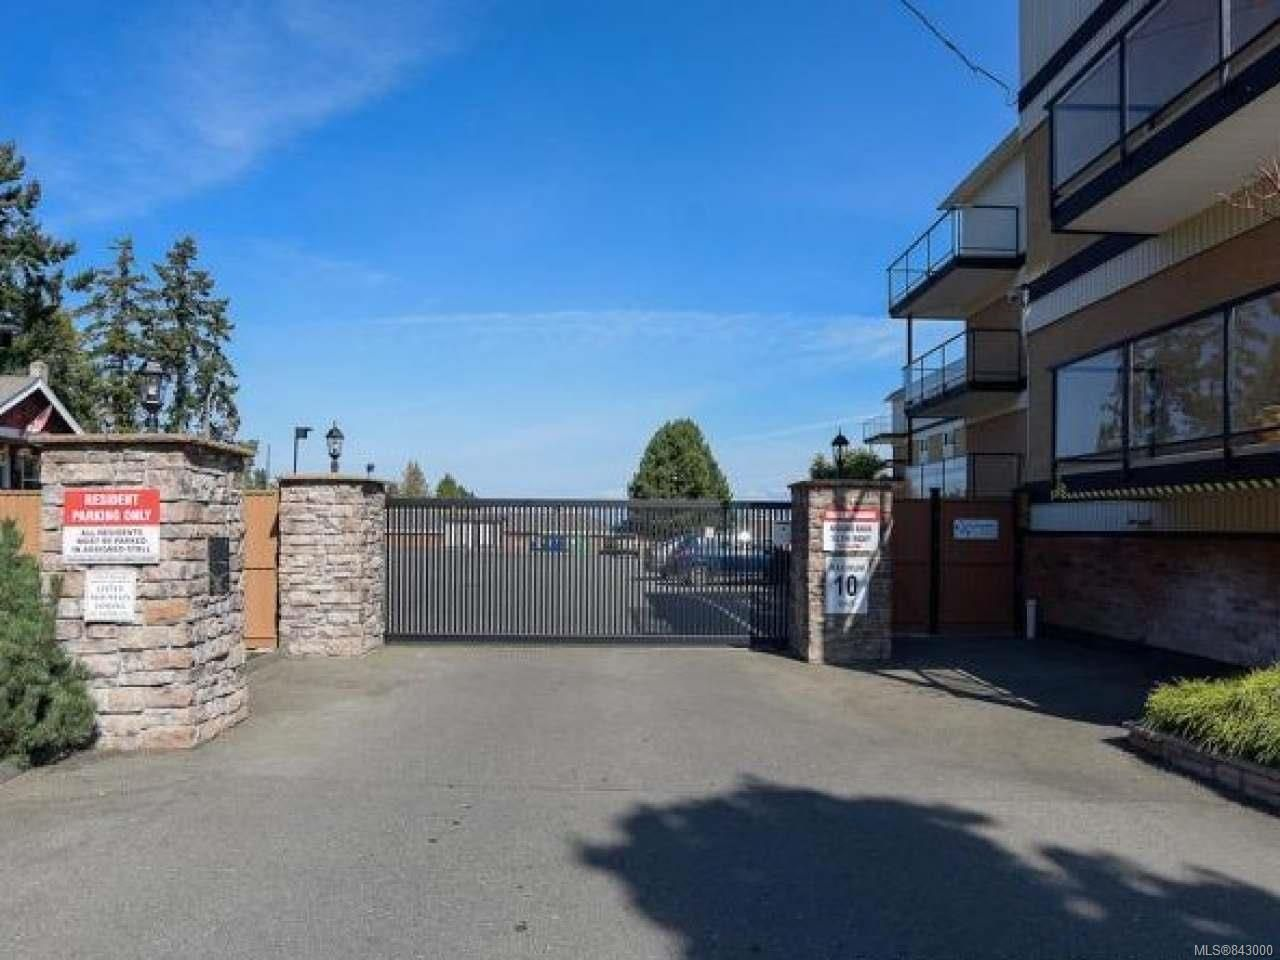 Photo 9: Photos: 405 255 W Hirst Ave in PARKSVILLE: PQ Parksville Condo for sale (Parksville/Qualicum)  : MLS®# 843000